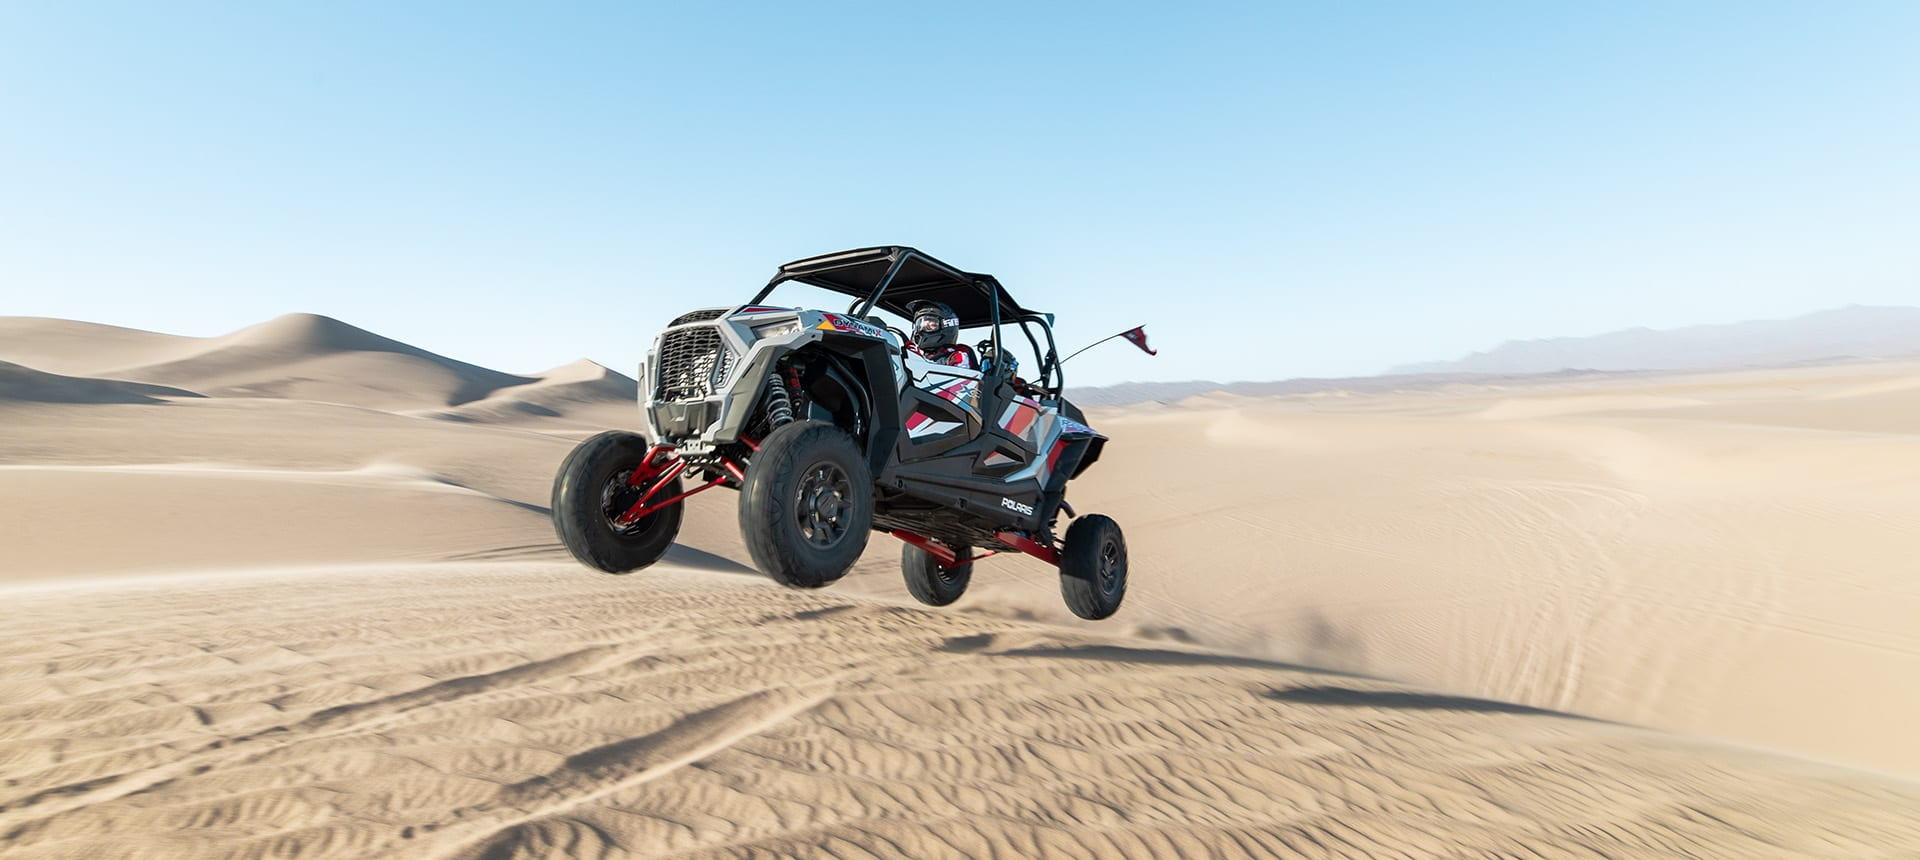 RZR XP 4 TOURBO 4 SEATER OFFROAD VEHICLE